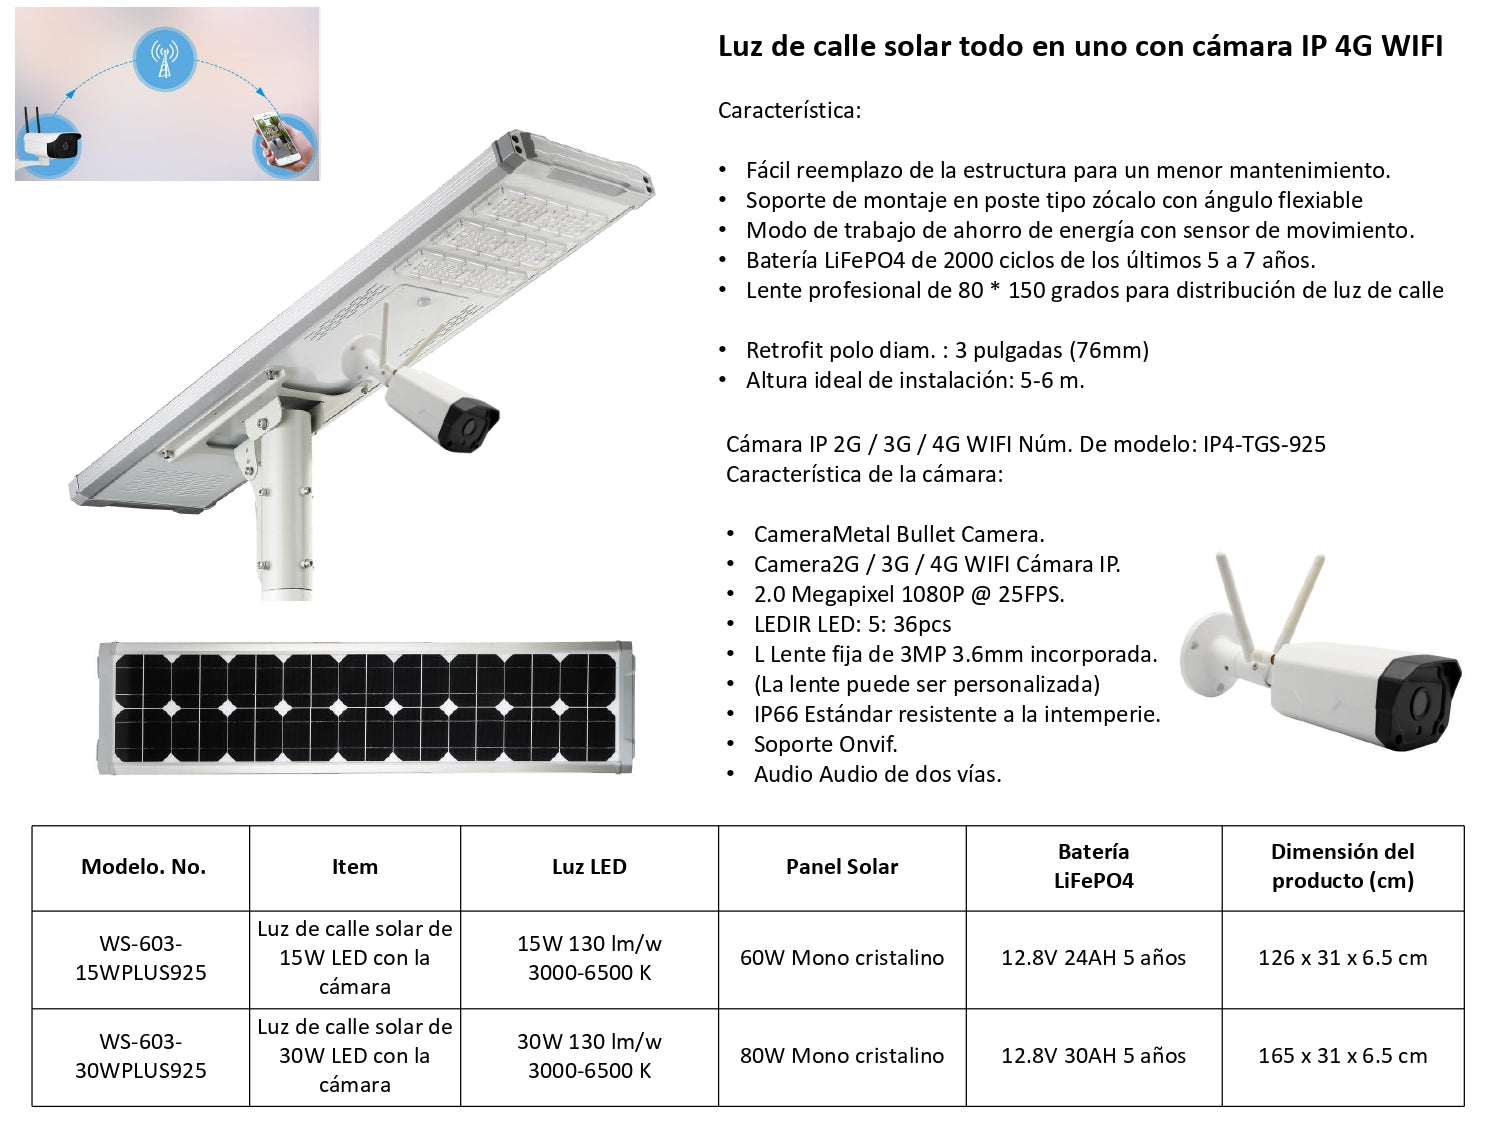 Luminaria LED con Cámara de Seguridad WIFI 4G y Panel Solar